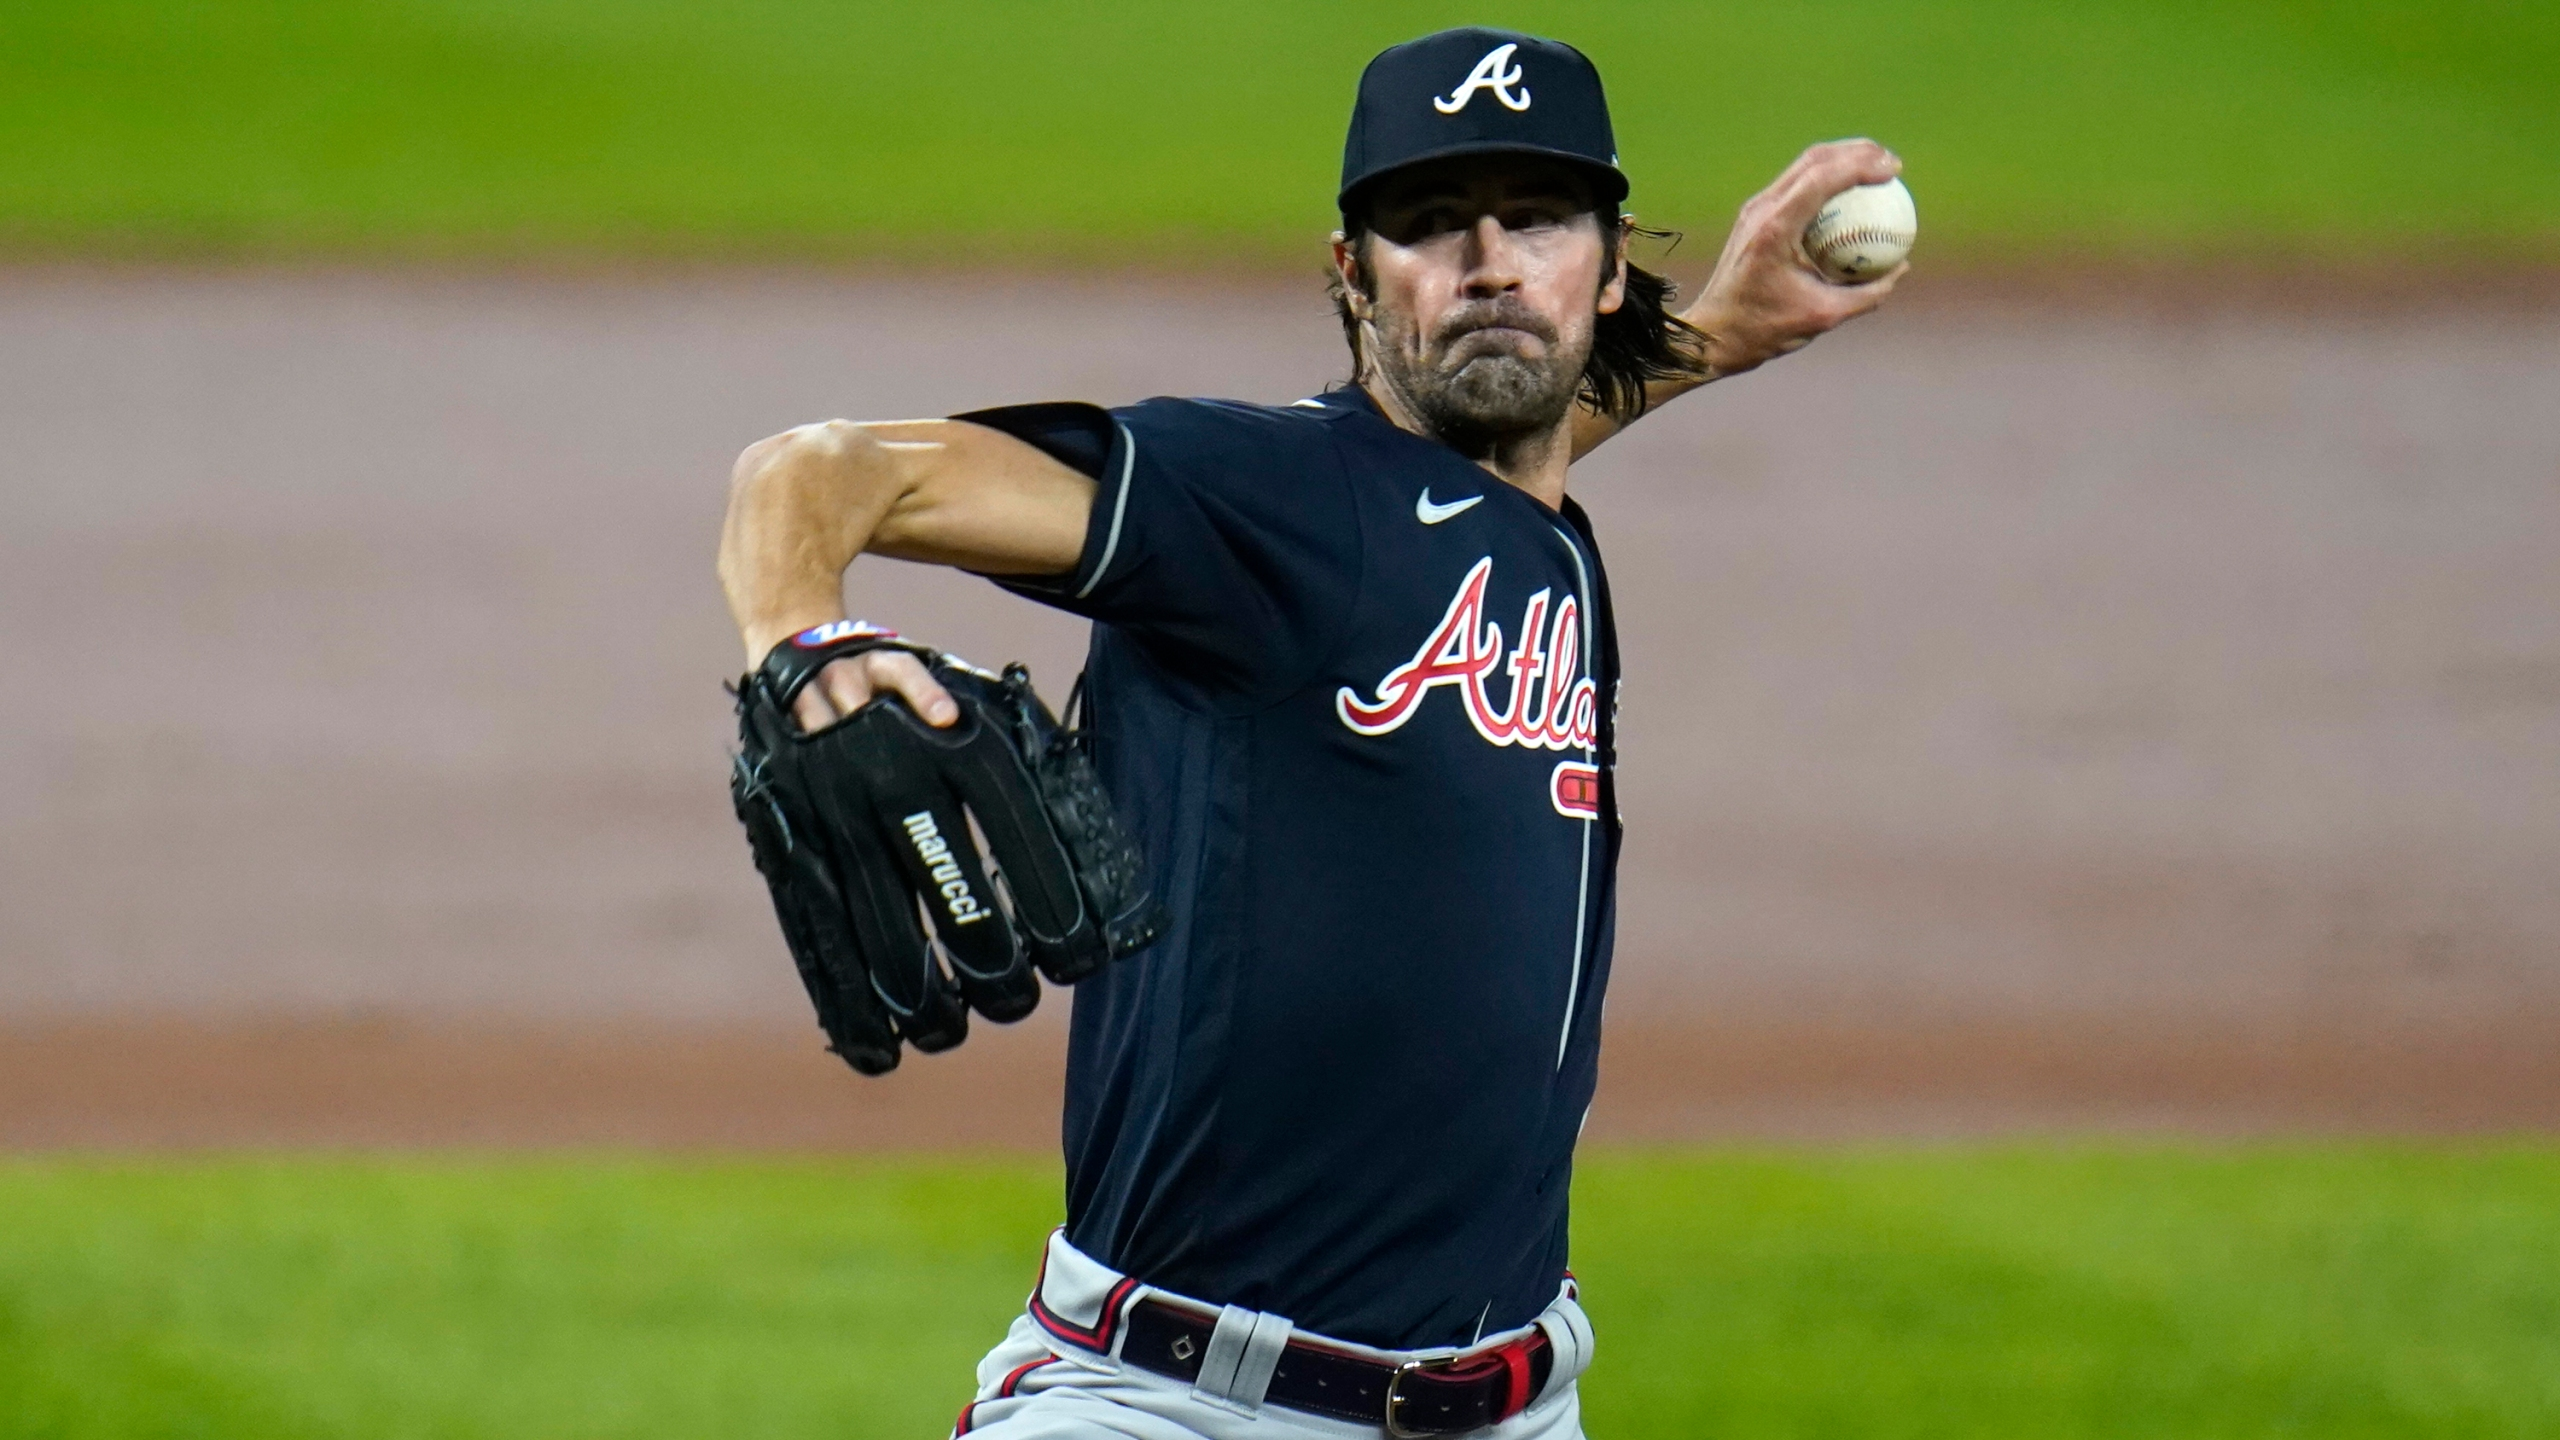 In this Sept. 16, 2020 file photo, Atlanta Braves starting pitcher Cole Hamels throws a pitch to the Baltimore Orioles during the second inning of a game in Baltimore. (Julio Cortez/Associated Press)